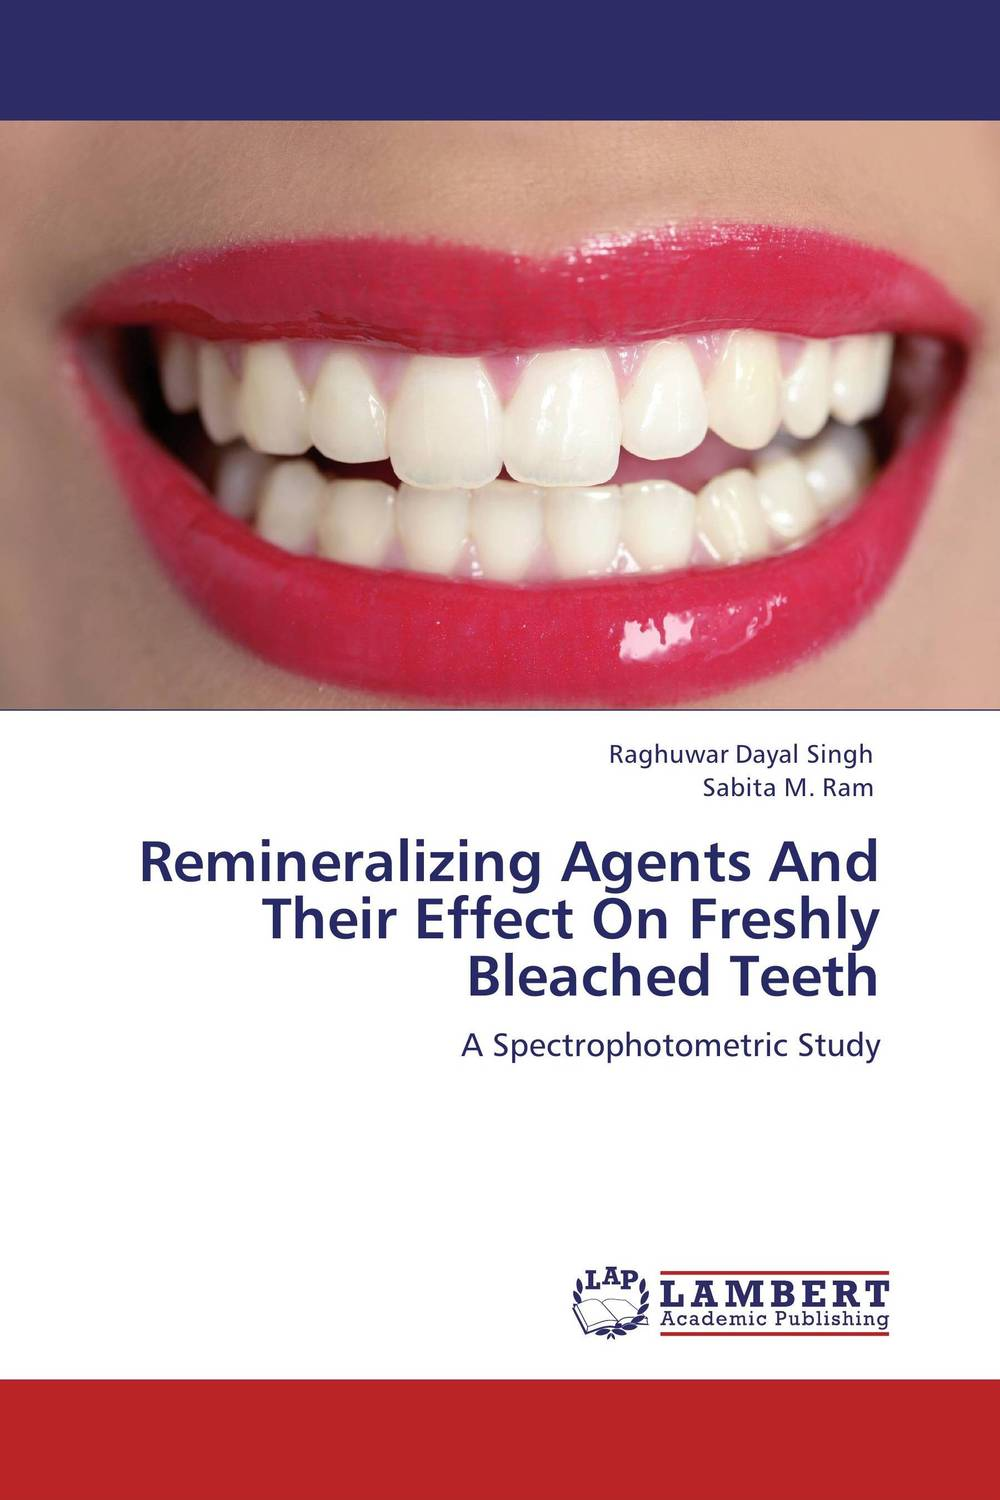 Remineralizing Agents And Their Effect On Freshly Bleached Teeth karanprakash singh ramanpreet kaur bhullar and sumit kochhar forensic dentistry teeth and their secrets